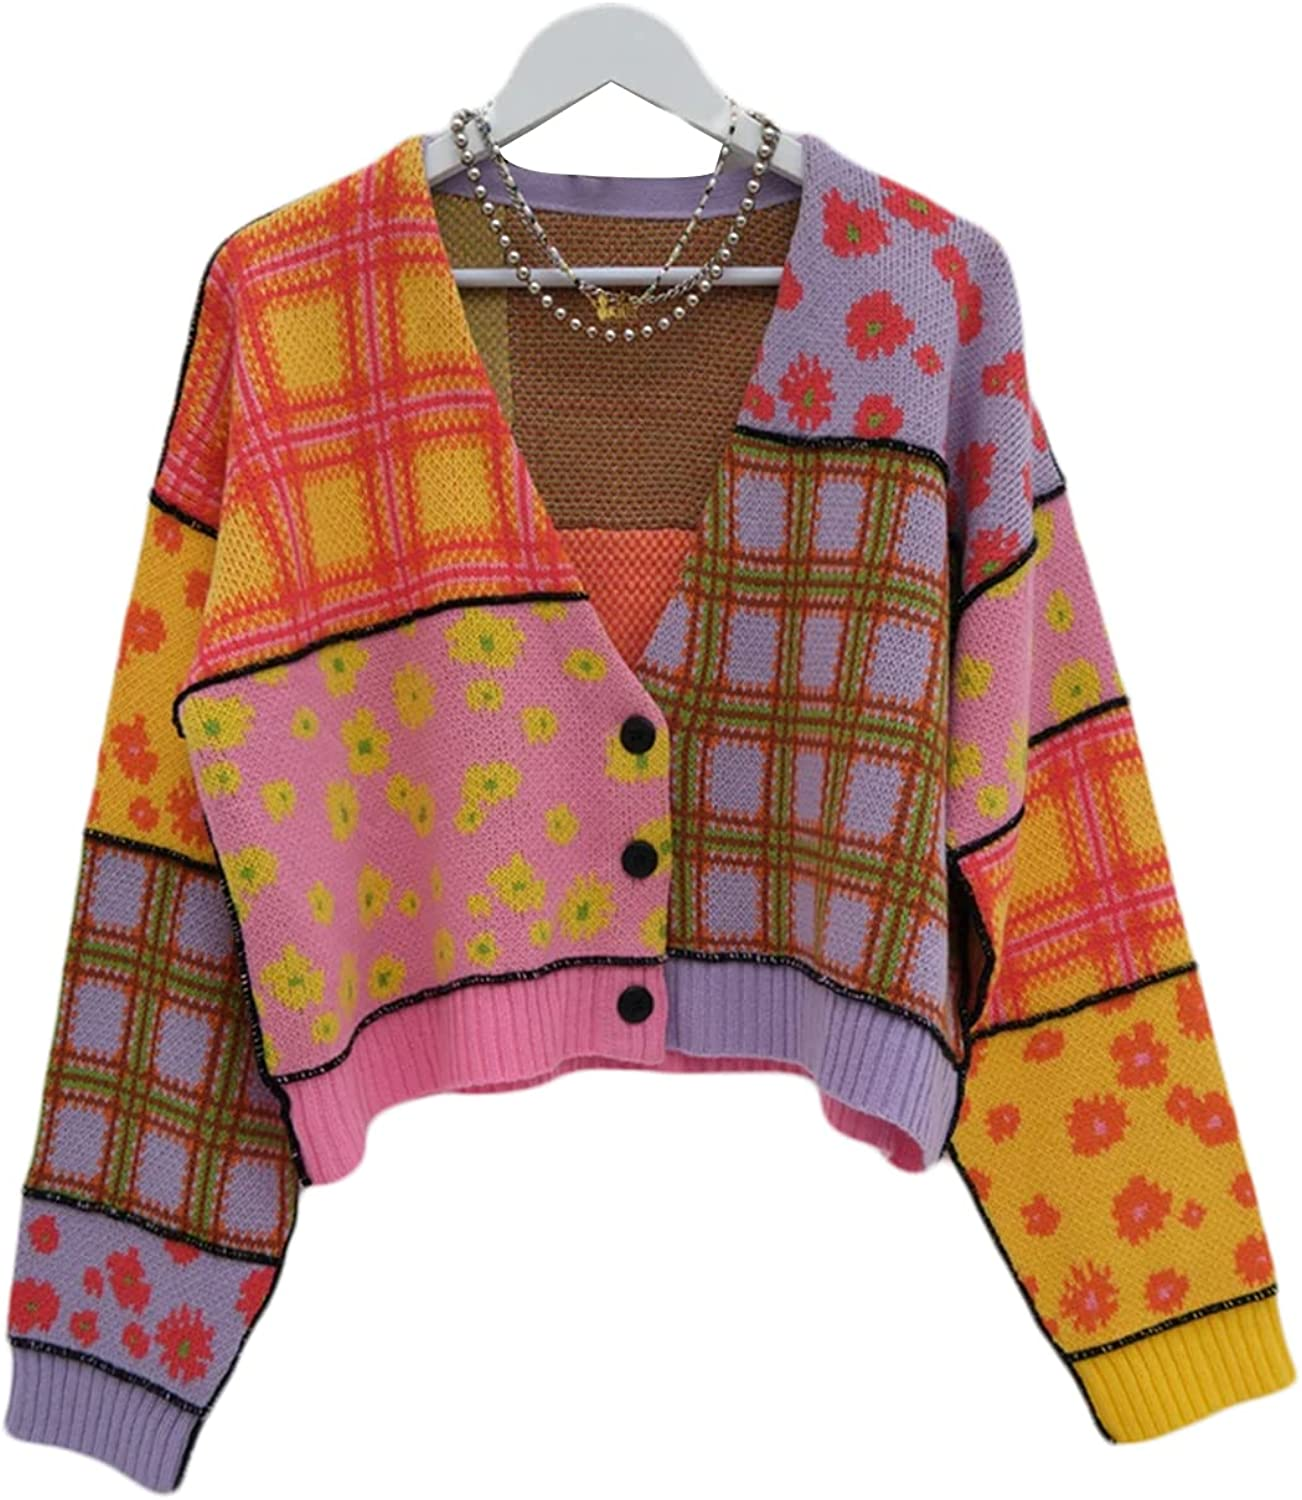 Women's V Neck Cropped Cardigan Long Sleeve Floral Print Button Down Knit Casual Y2K Sweater Coat